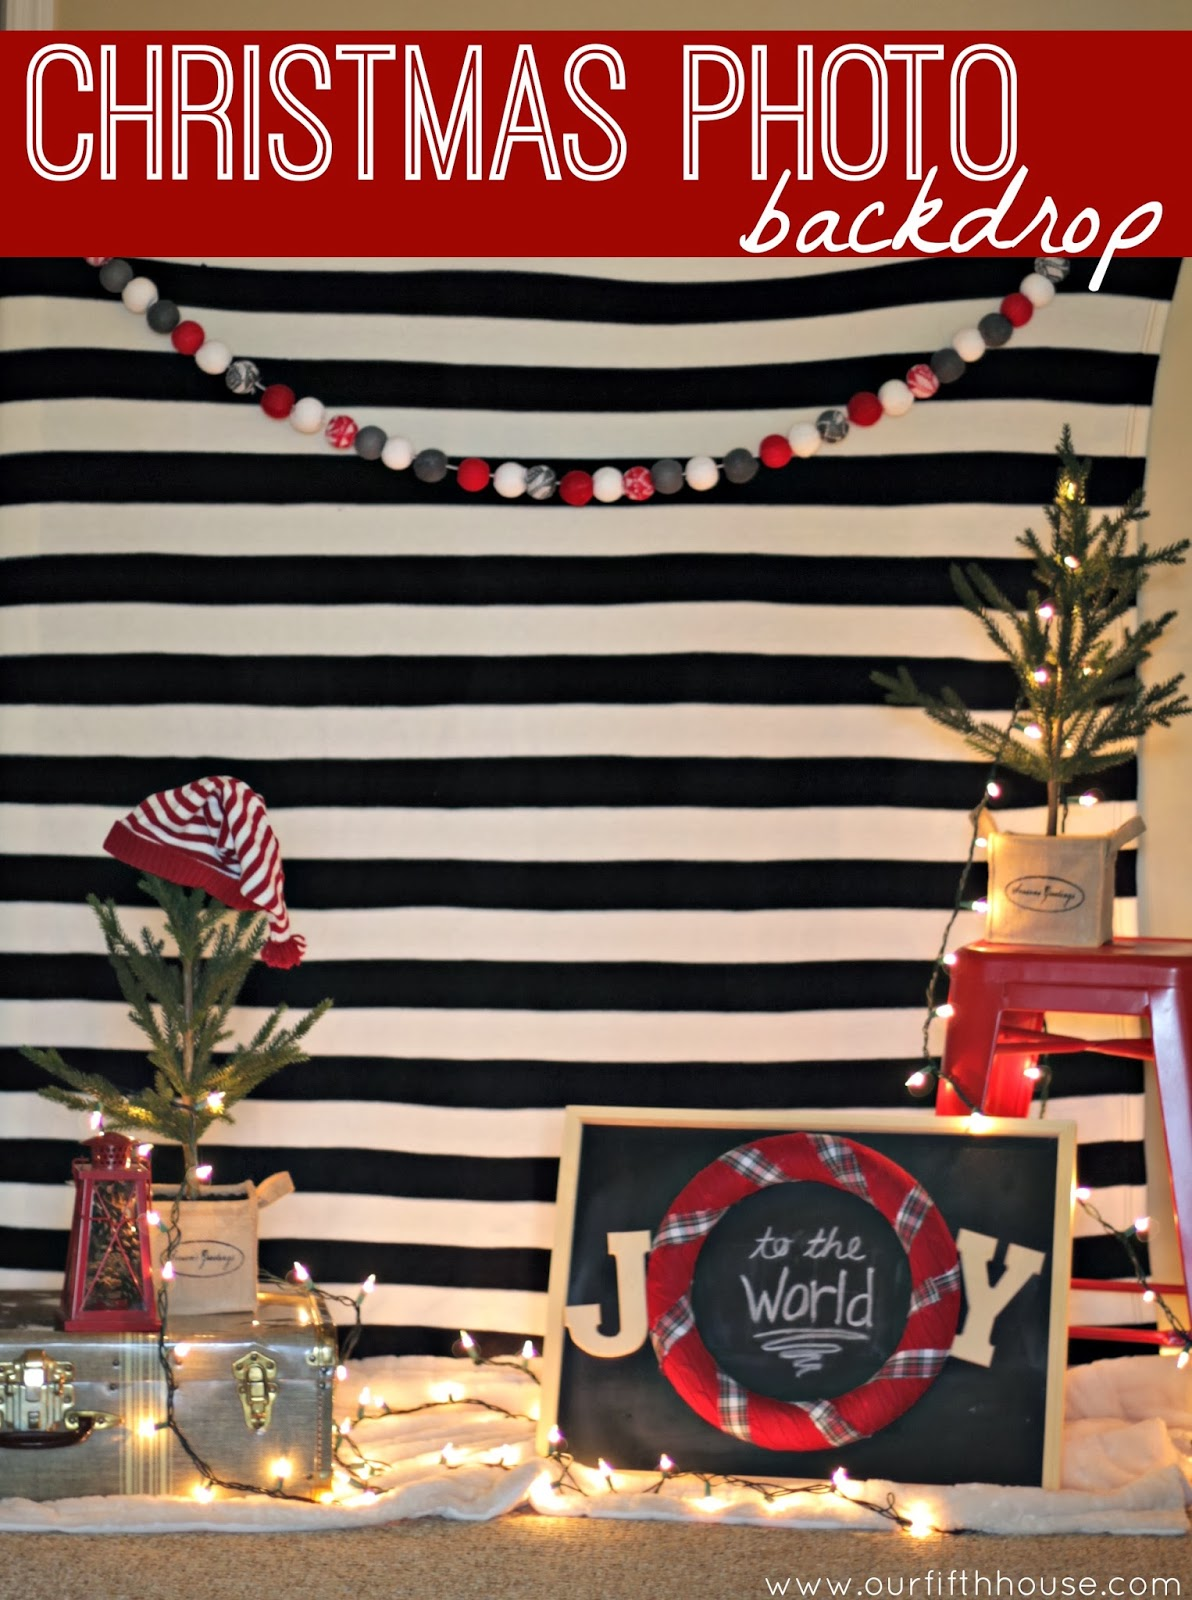 Apple Photo Booth Backdrops Christmas Photo Booth Backdrop